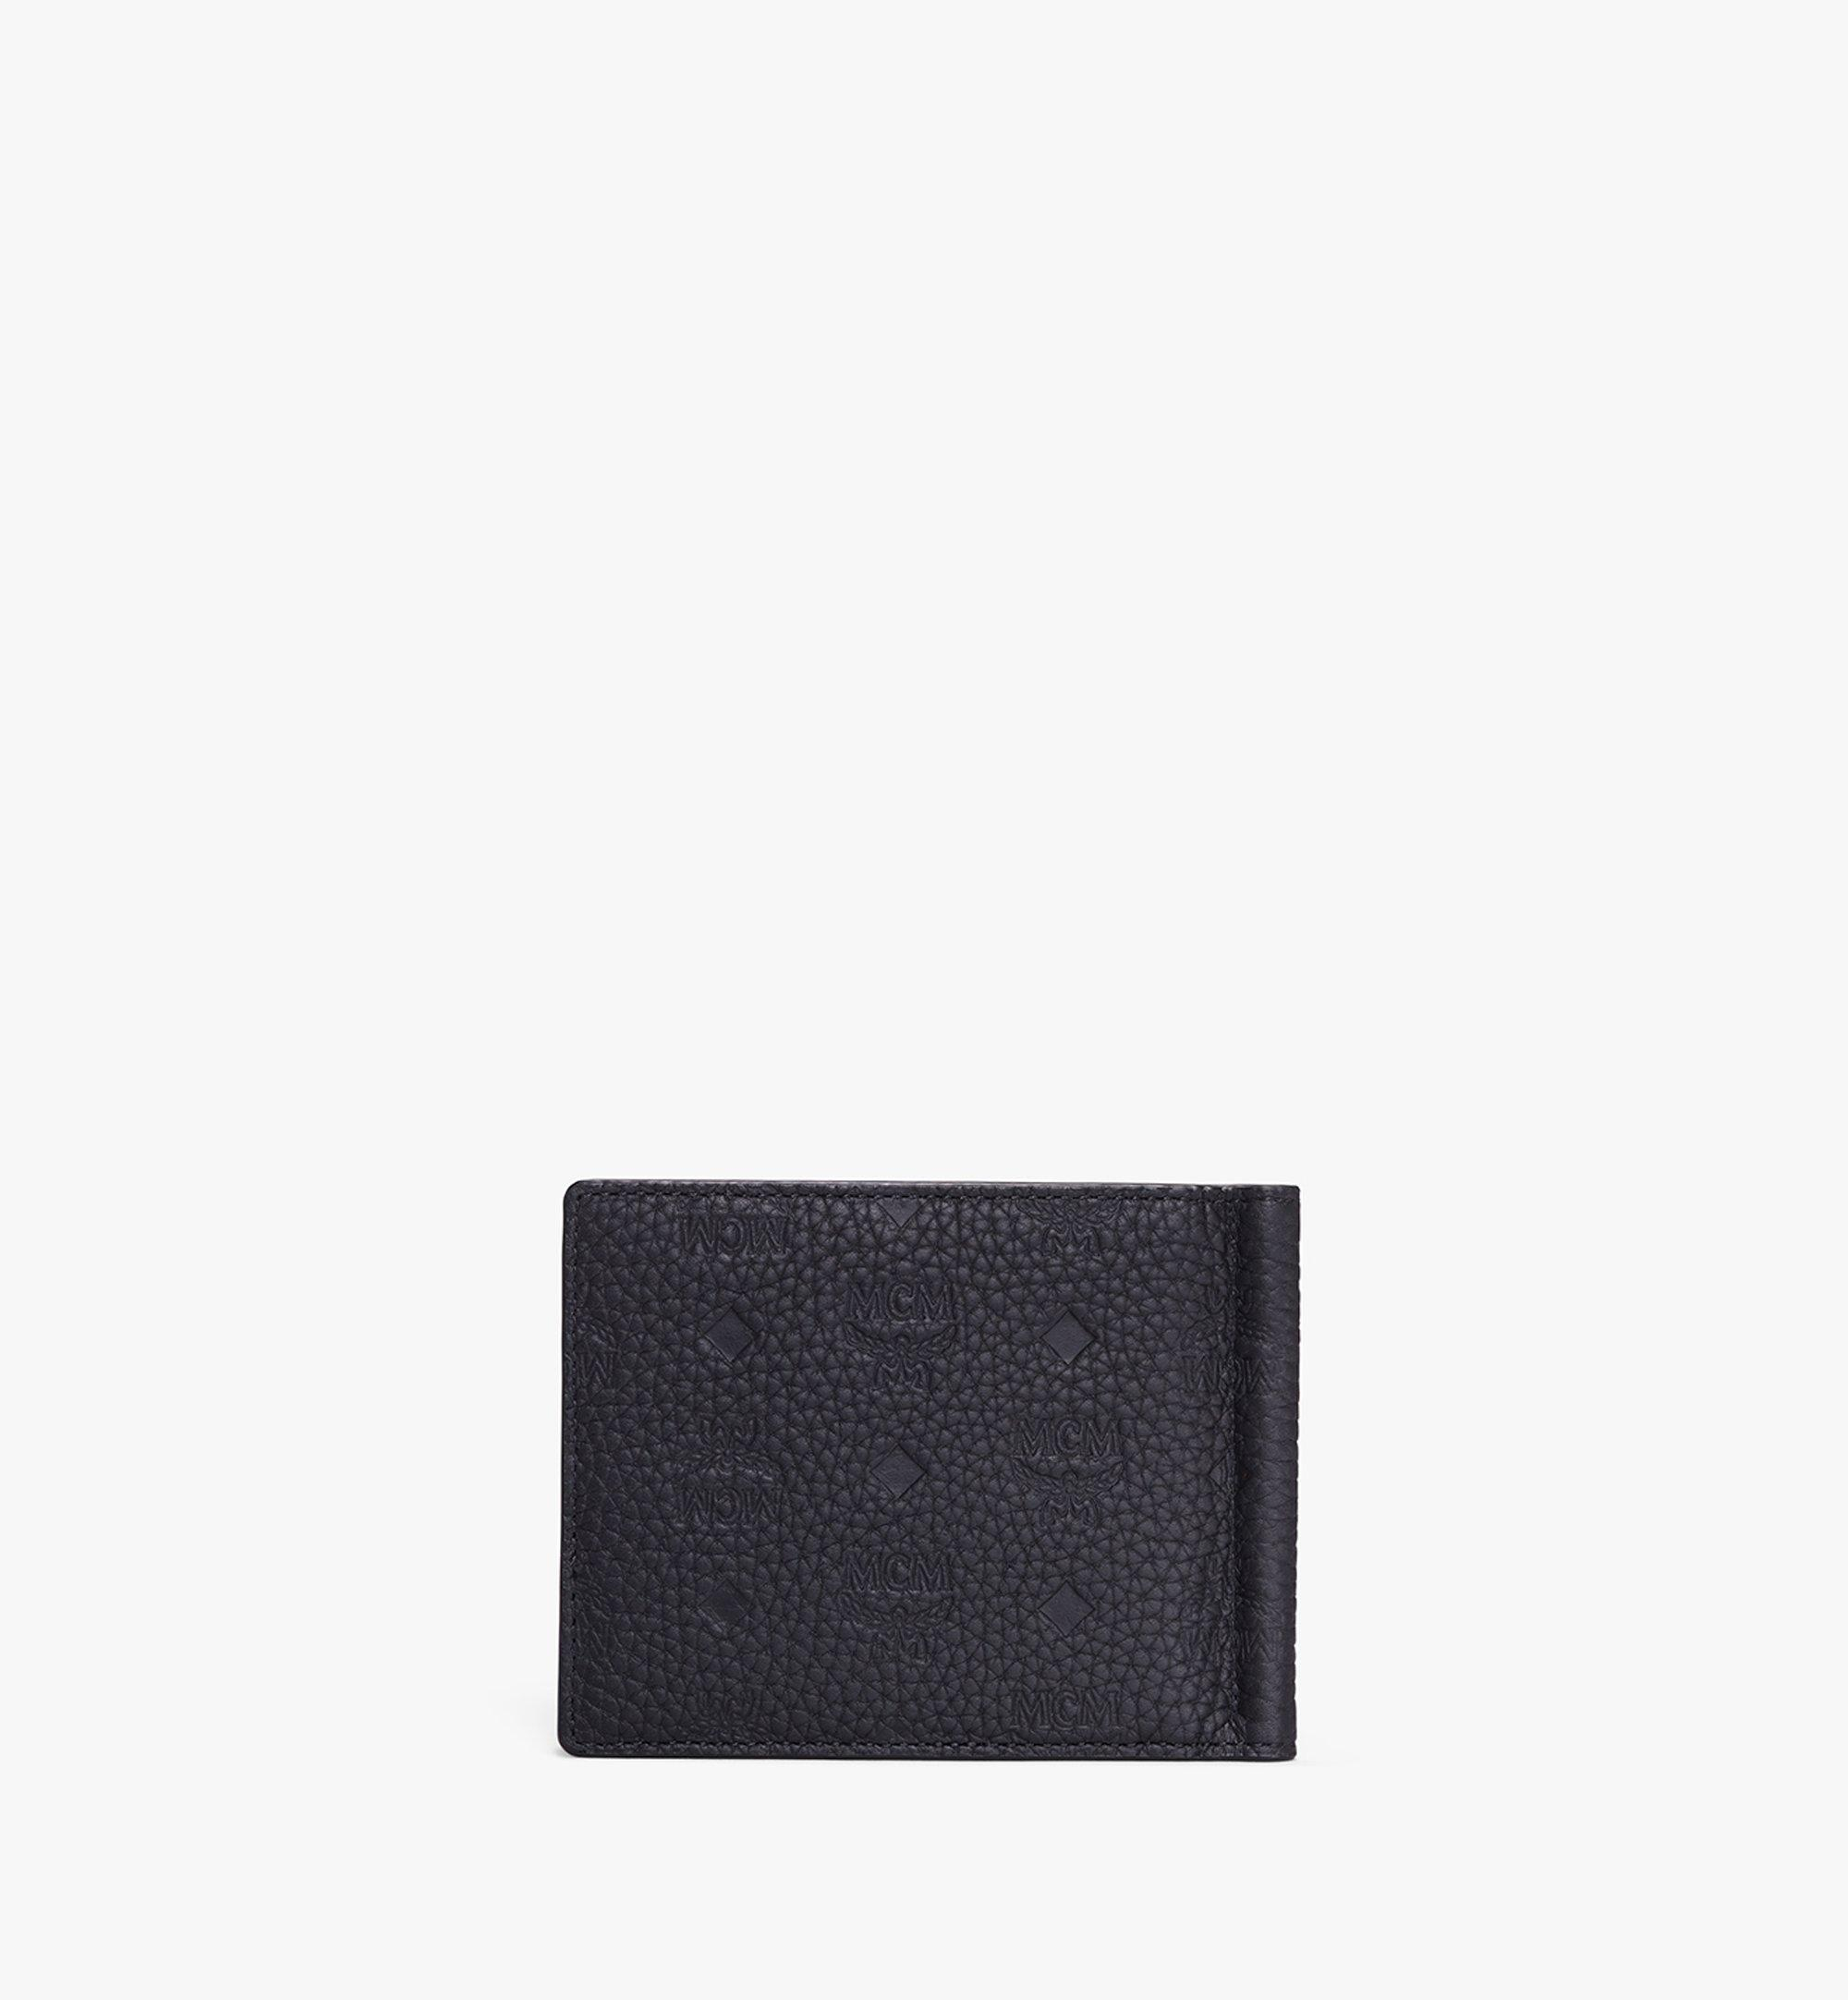 One Size Tivitat Money Clip Wallet In Monogram Leather Black Mcm Be